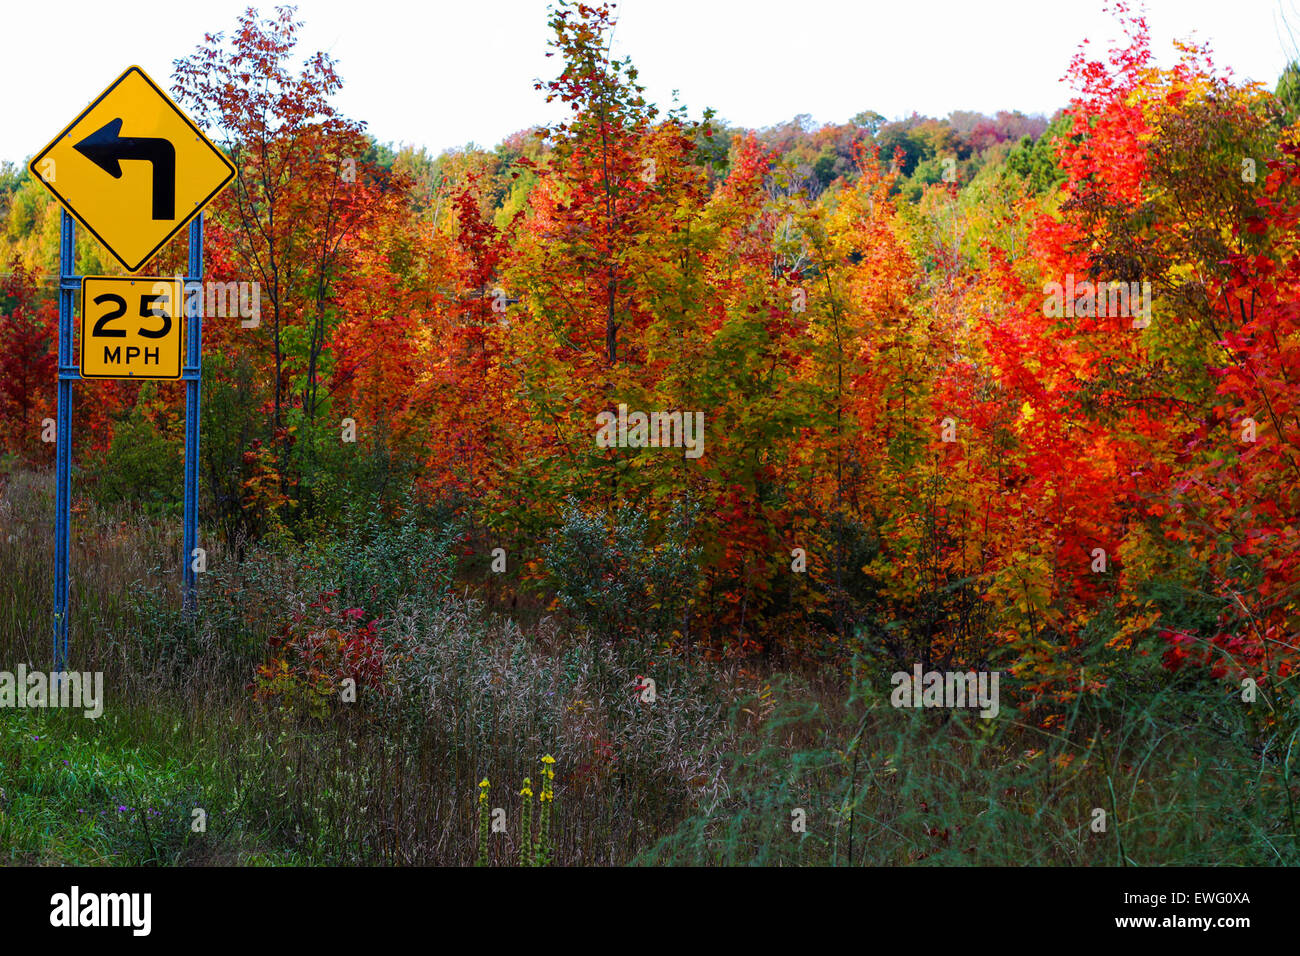 25 Autumn Curve Road Sign Speed Limit landscape outdoor plant sign trees  yellow - Stock Image